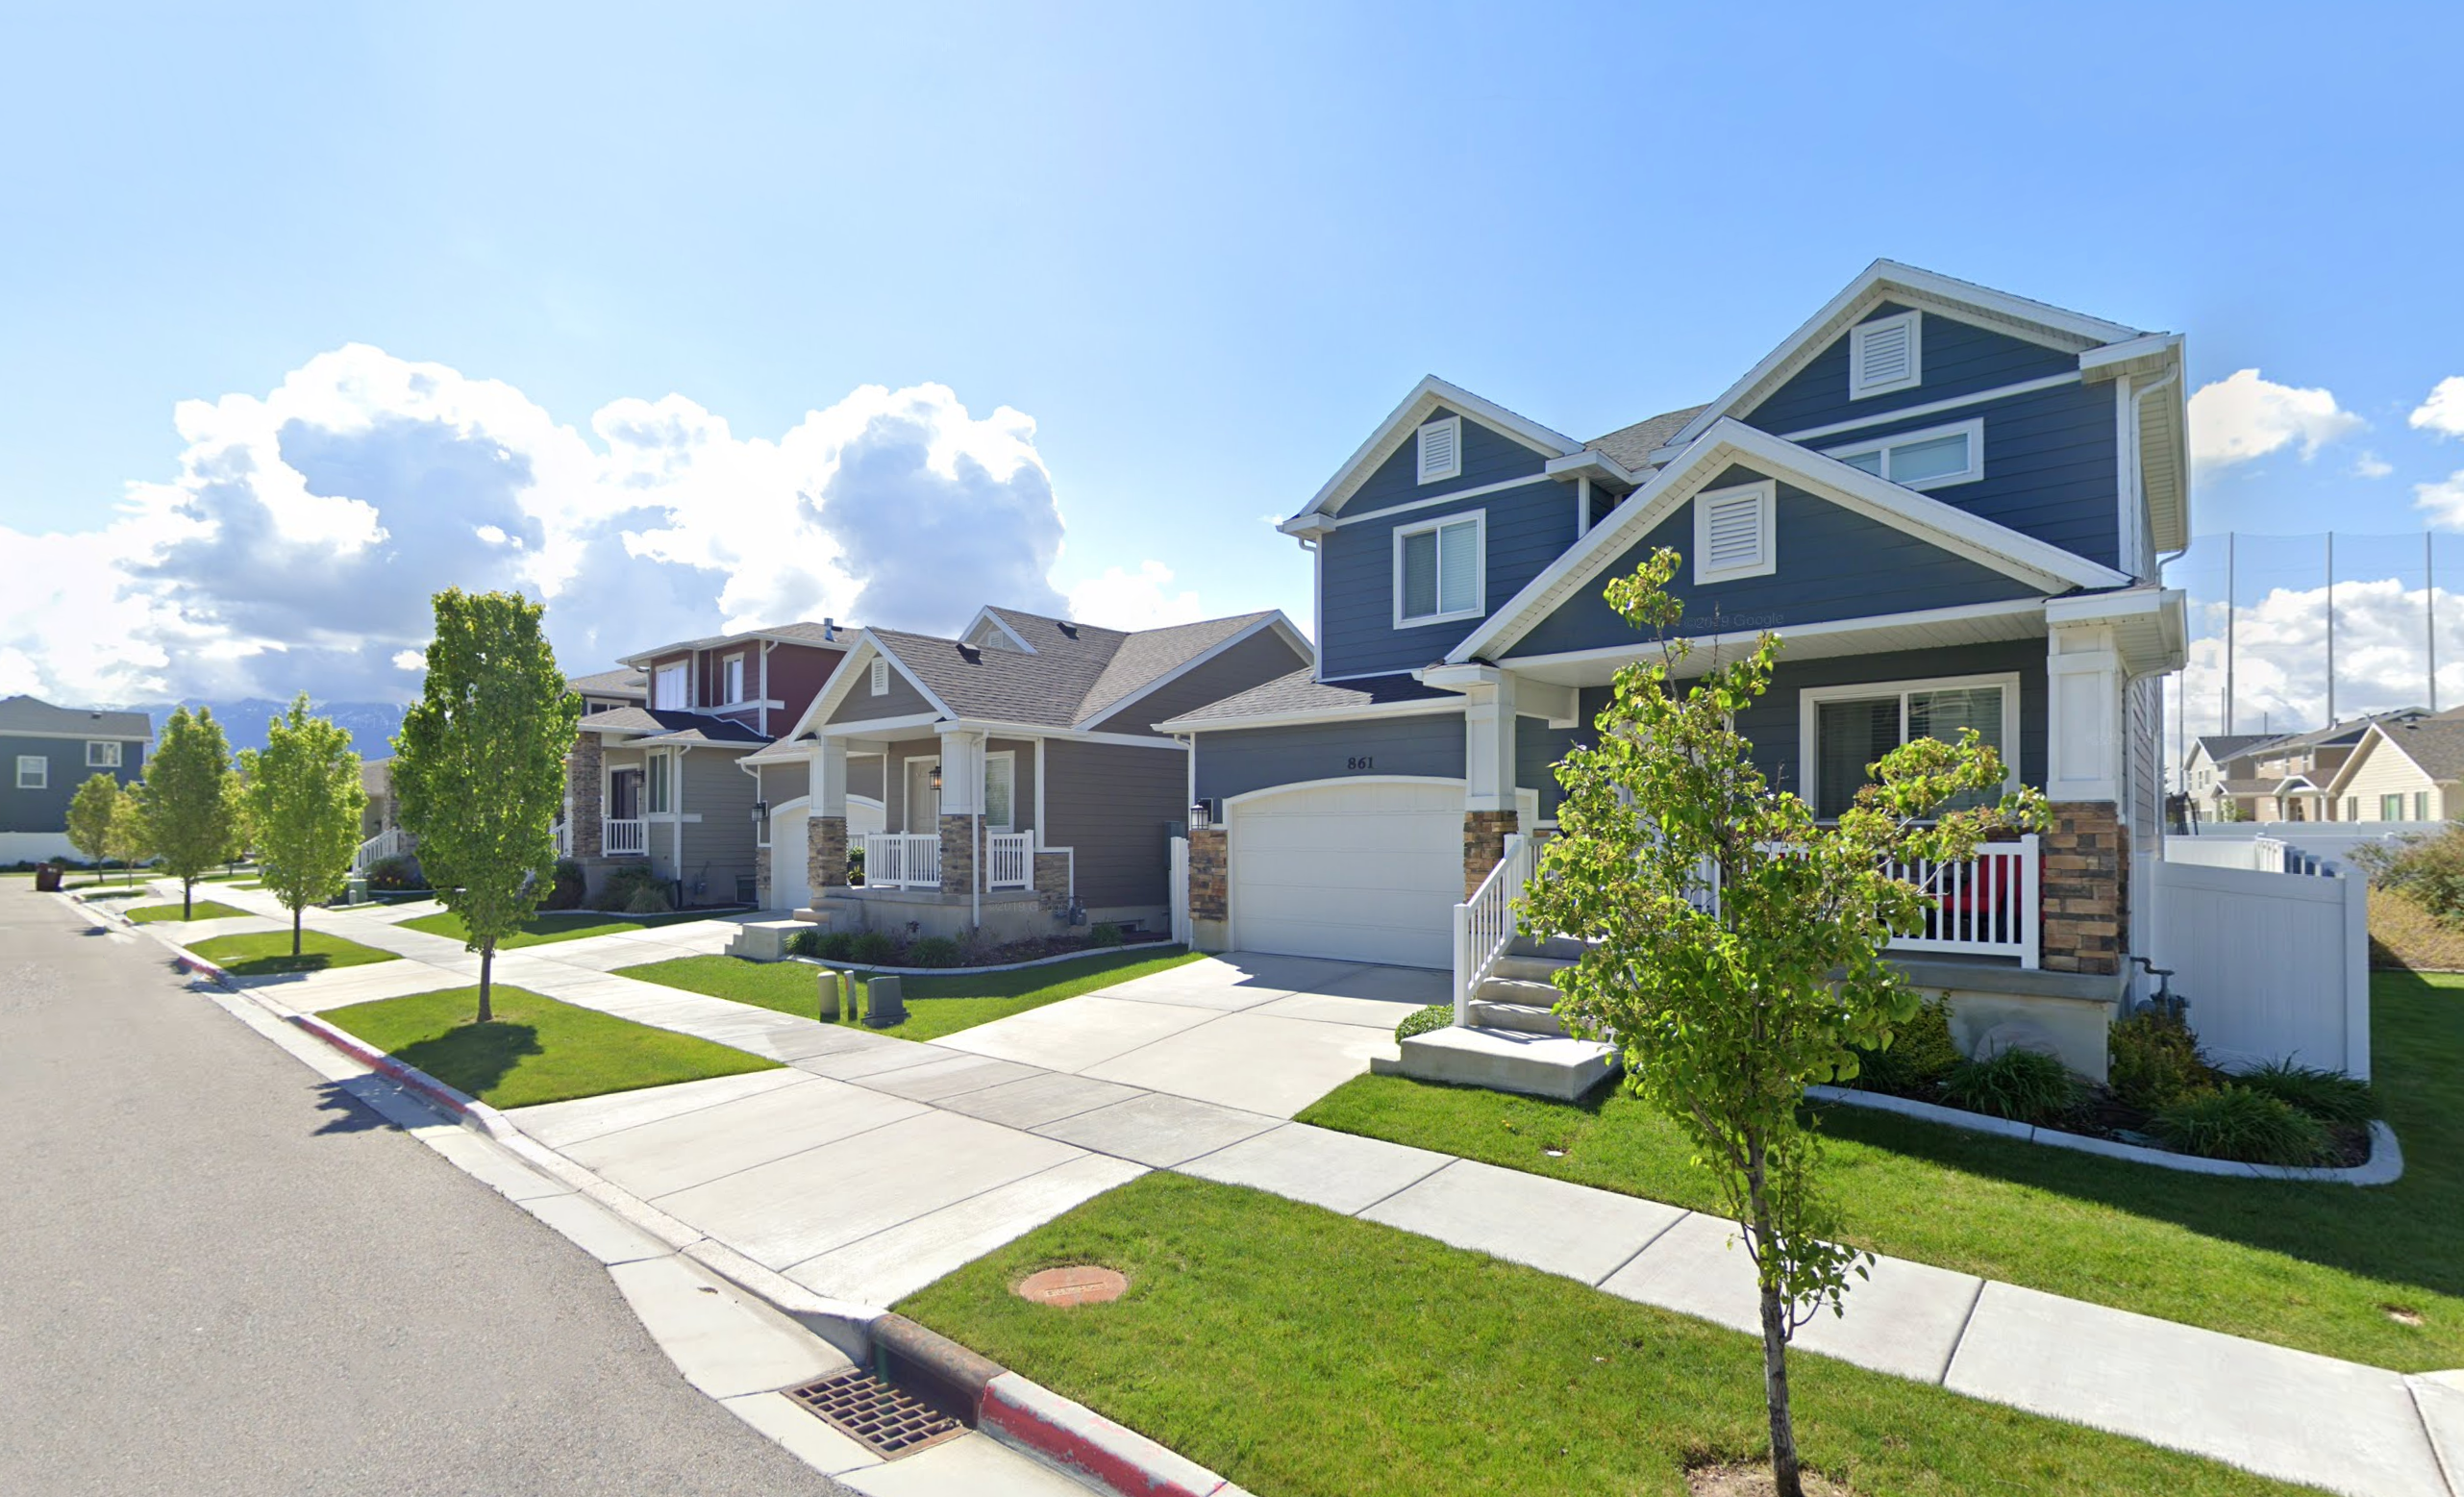 3 Communities in Utah Realtors Have Changed Their Minds About